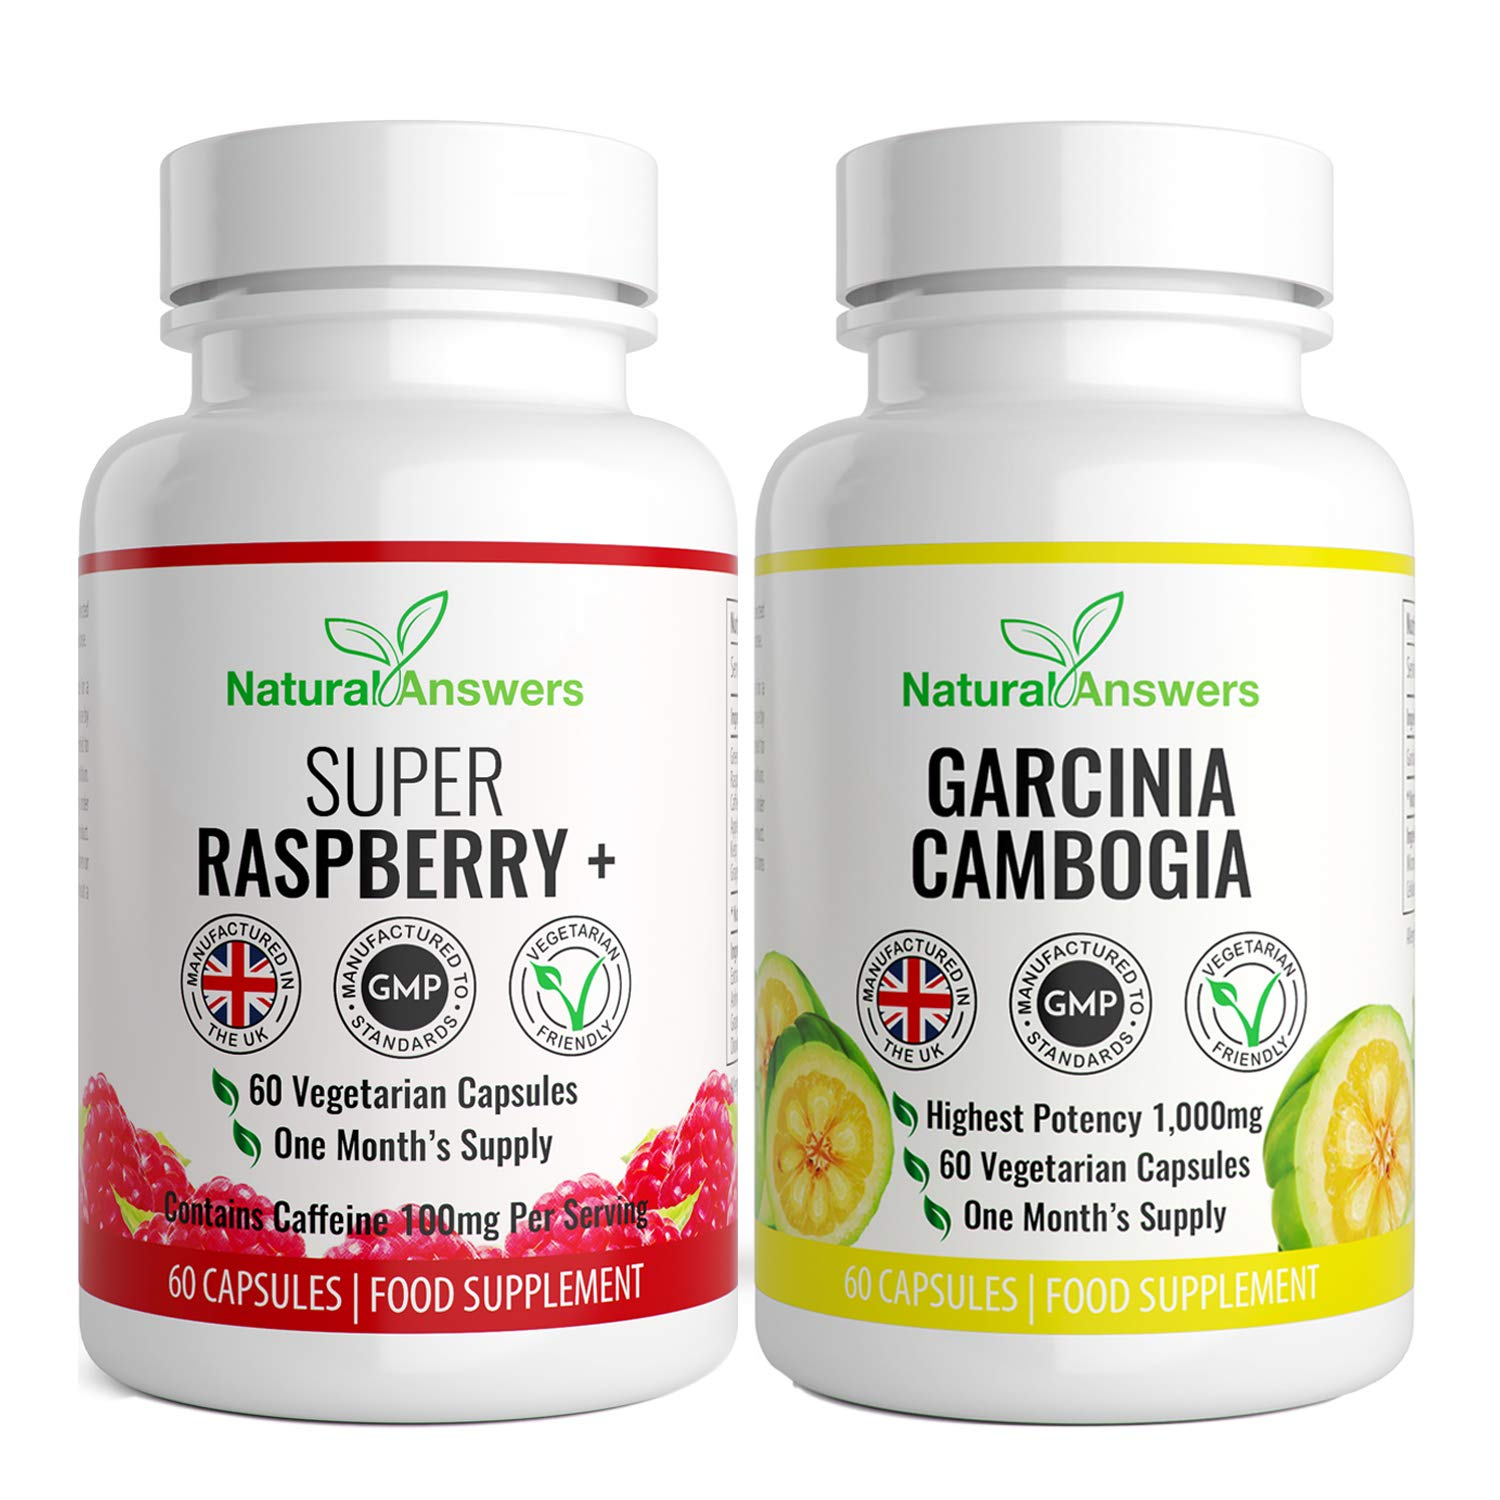 Garcinia Cambogia 1000mg Per Serving 60 Capsules + Super Raspberry Ketone  500mg 60 Capsules - Premium Quality - Fat Metabolism, Weight Management,  Fat